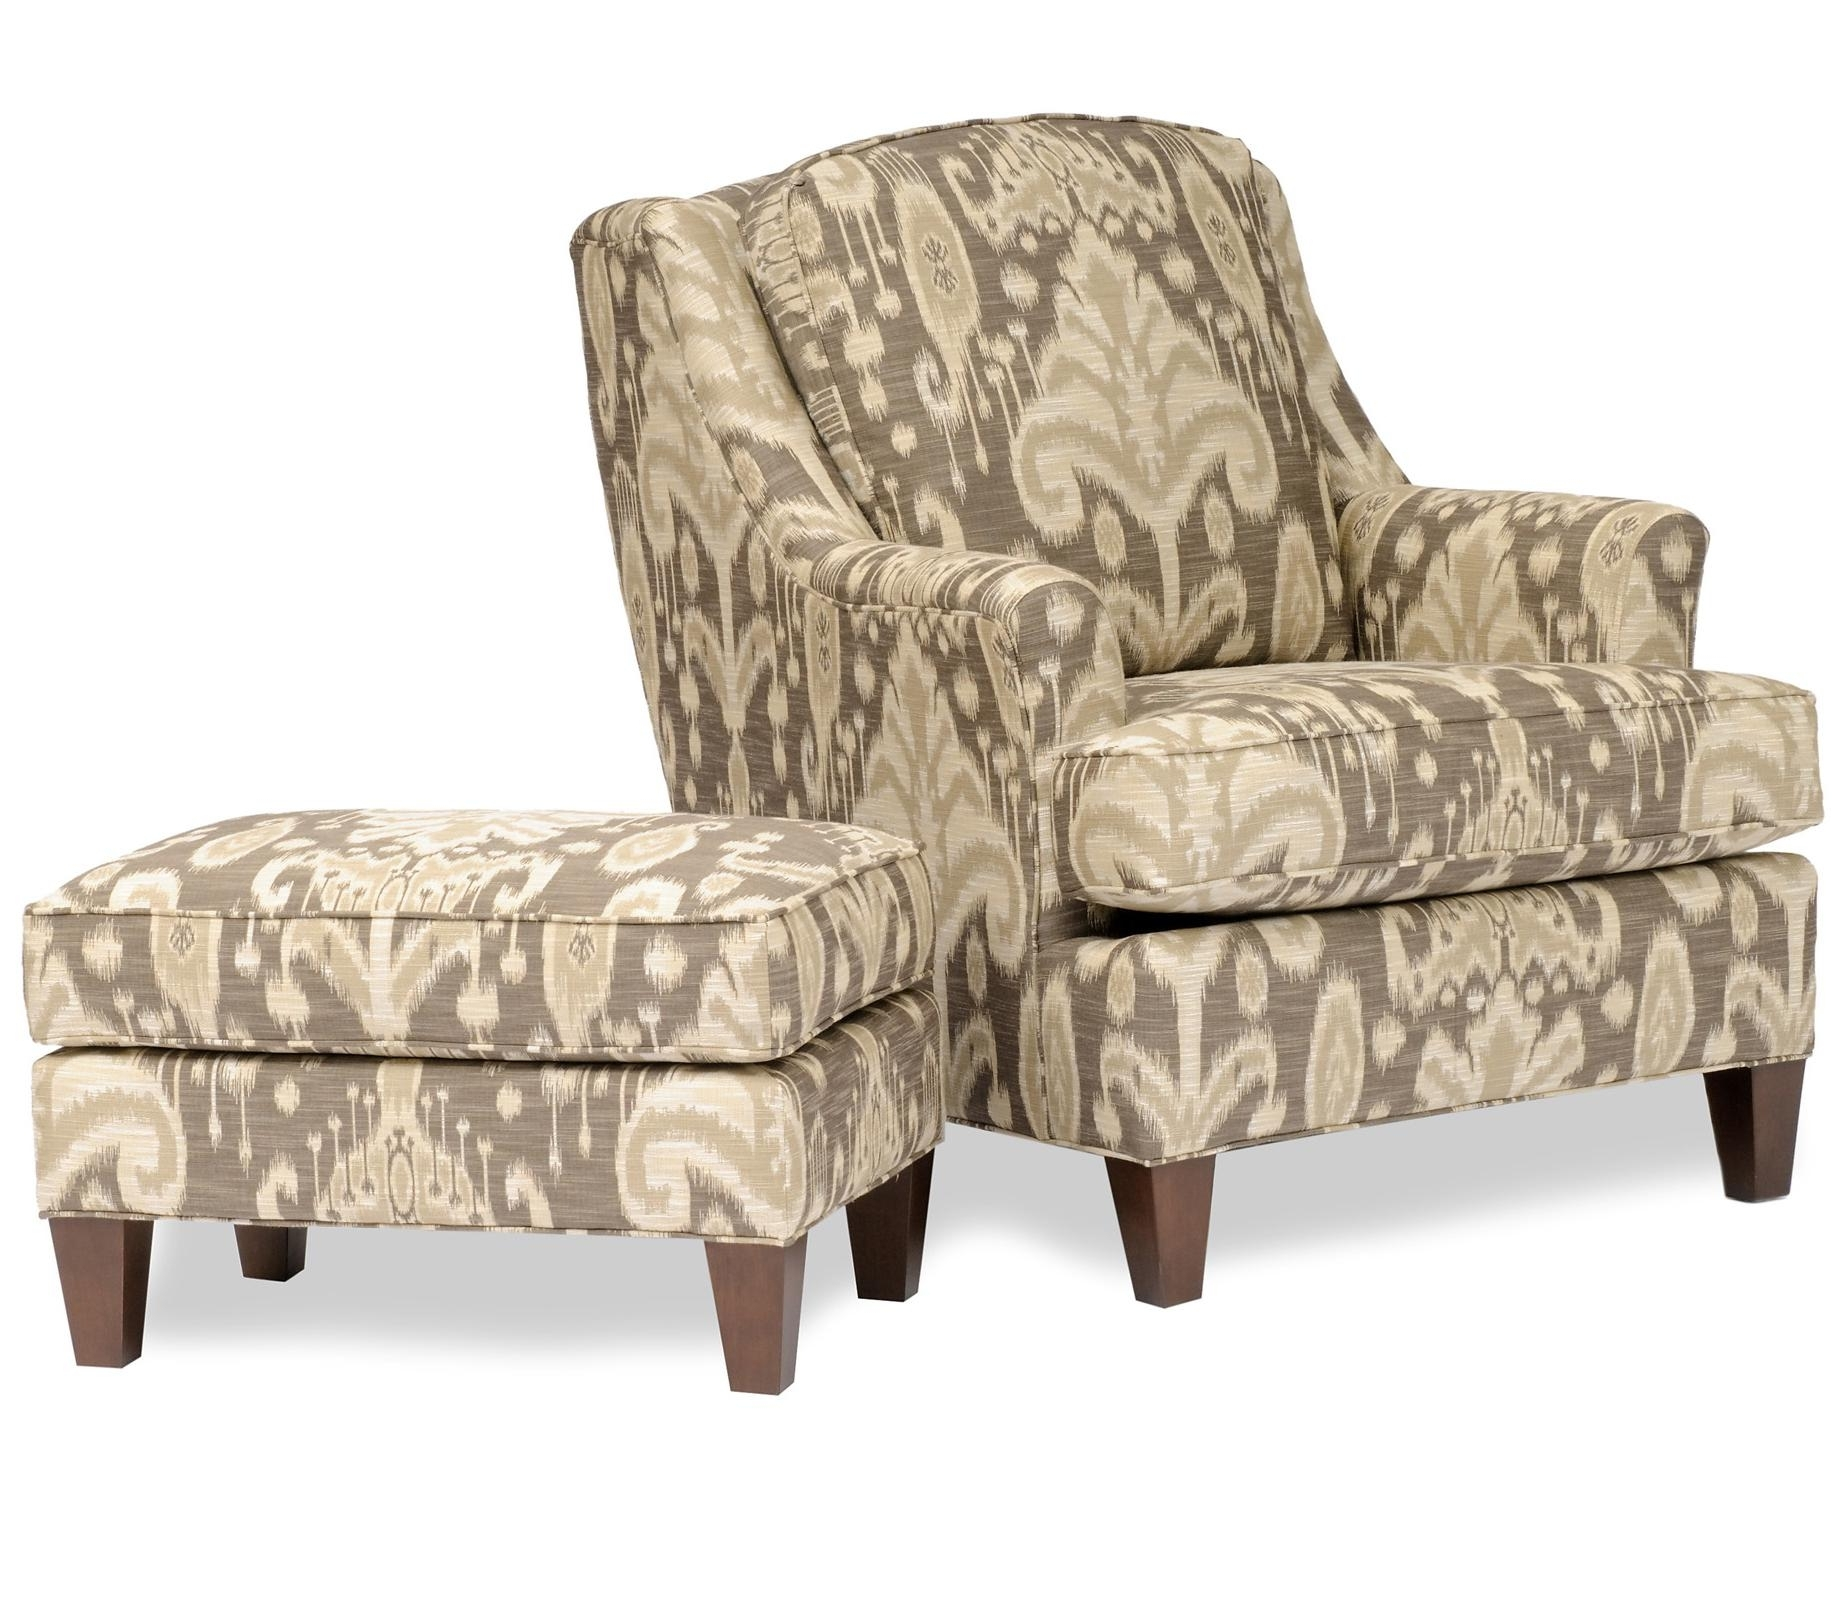 Chairs With Ottoman With Best And Newest Chairs : Cool Accent Chairs With Grey Patterned Ottoman Occasional (View 5 of 20)